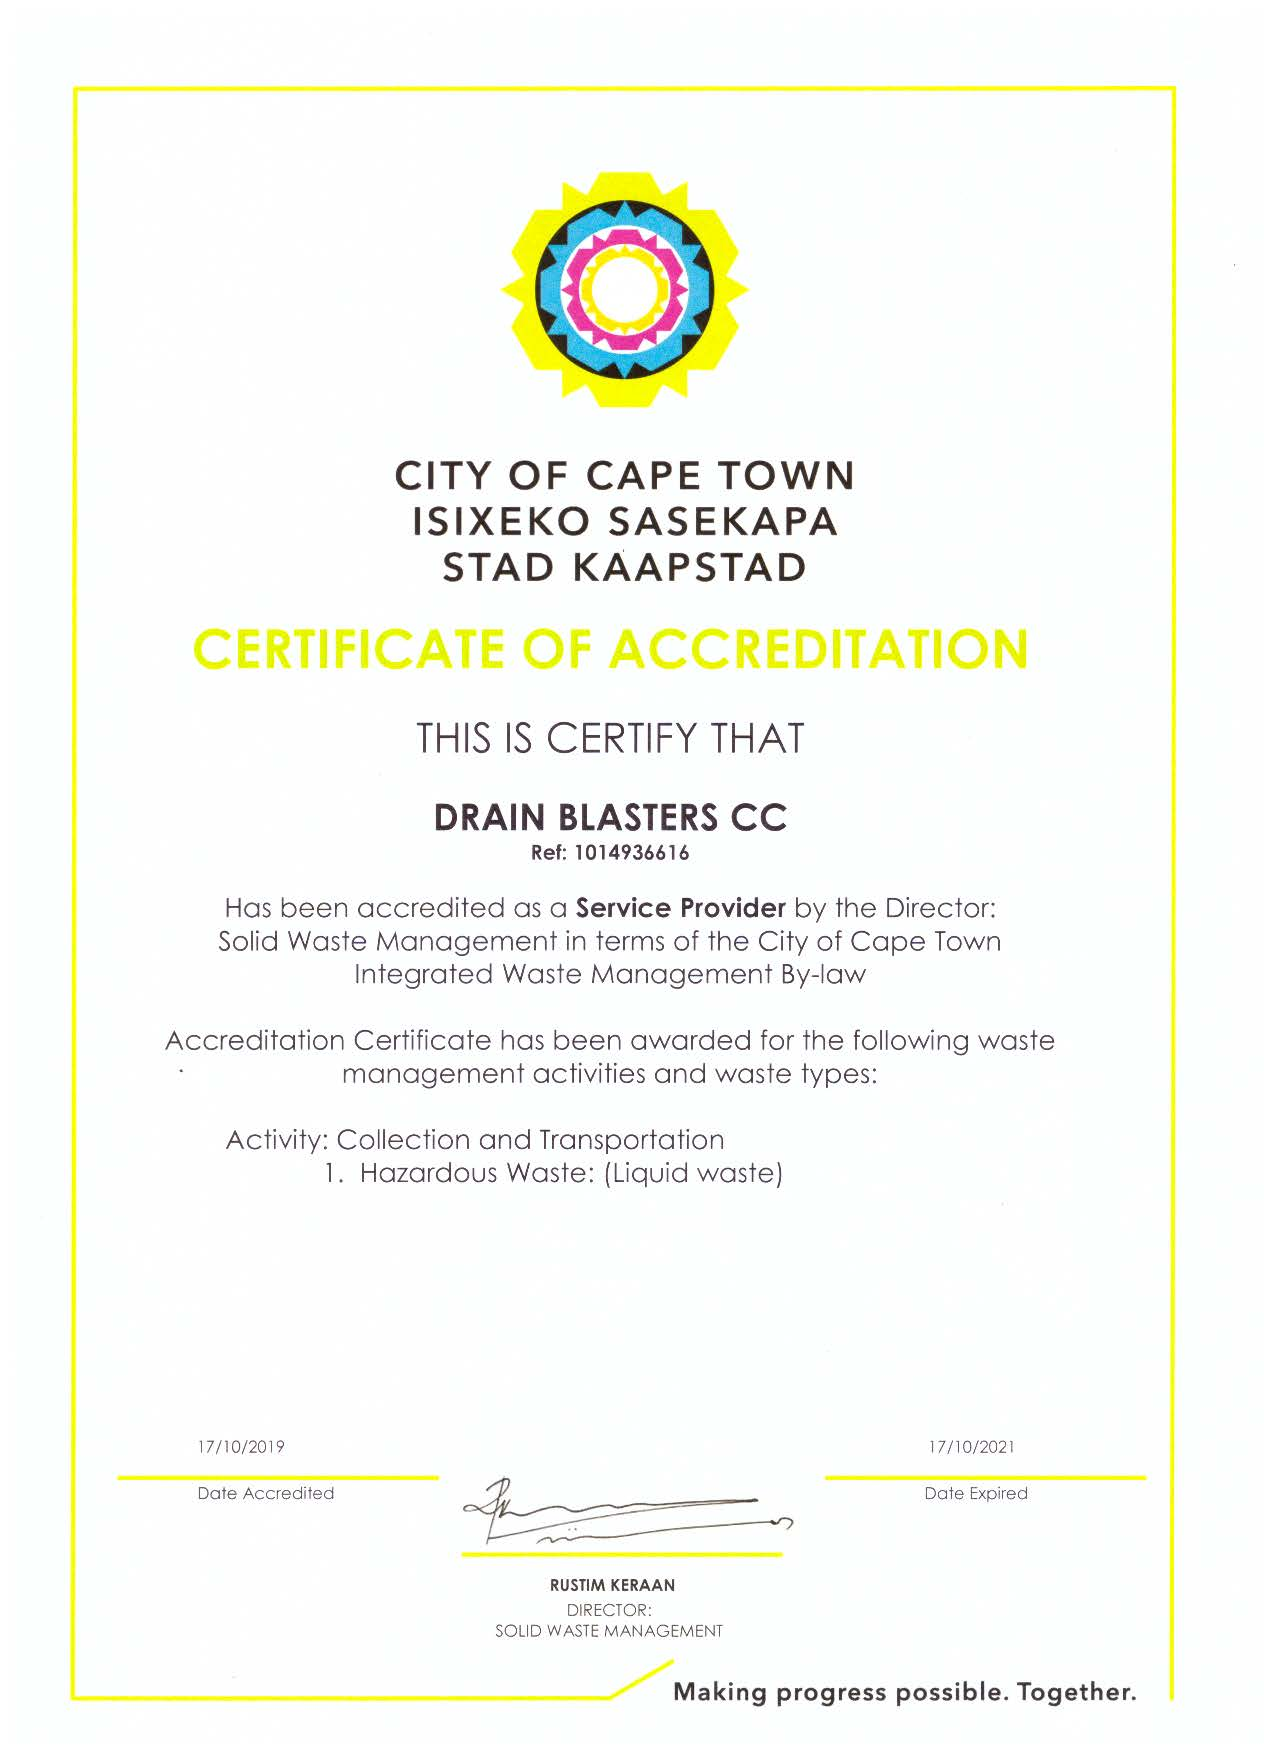 Drain Blasters is a licensed Liquid Waste Transporter with the City of Cape Town